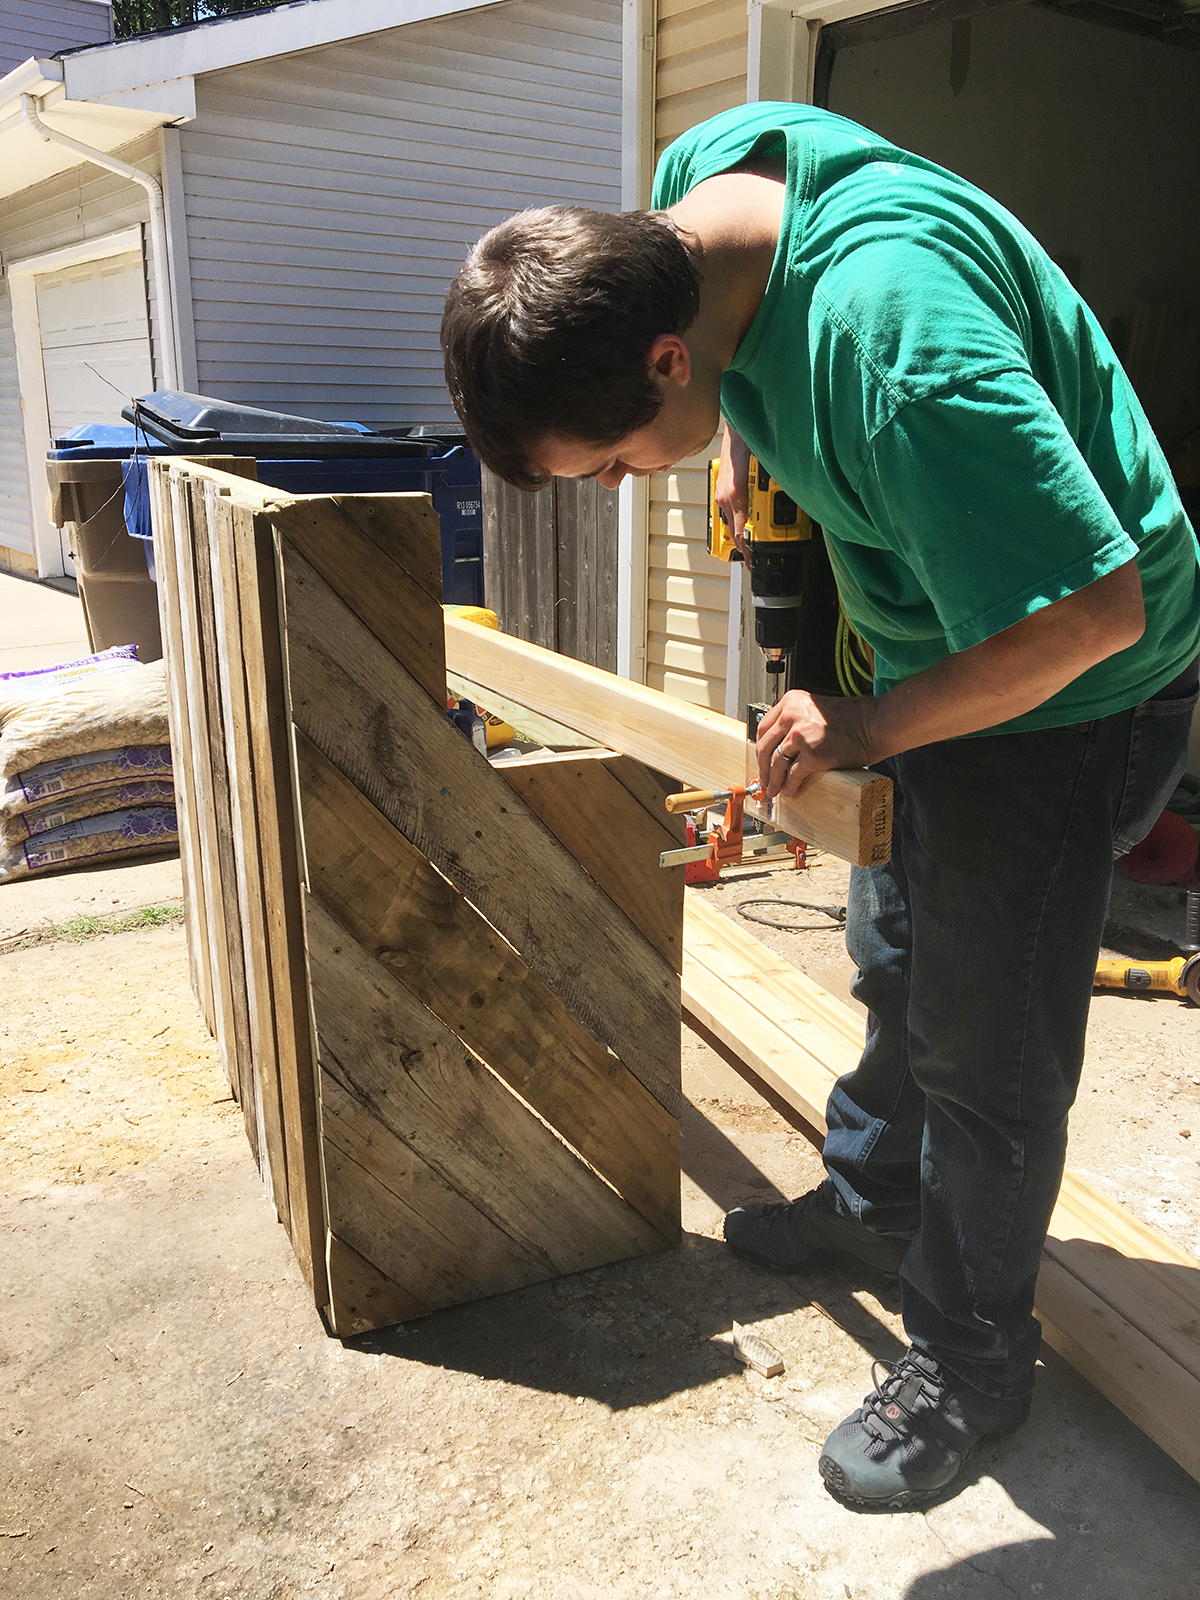 Woodworking is Tyler's passion and he puts it into everything he builds